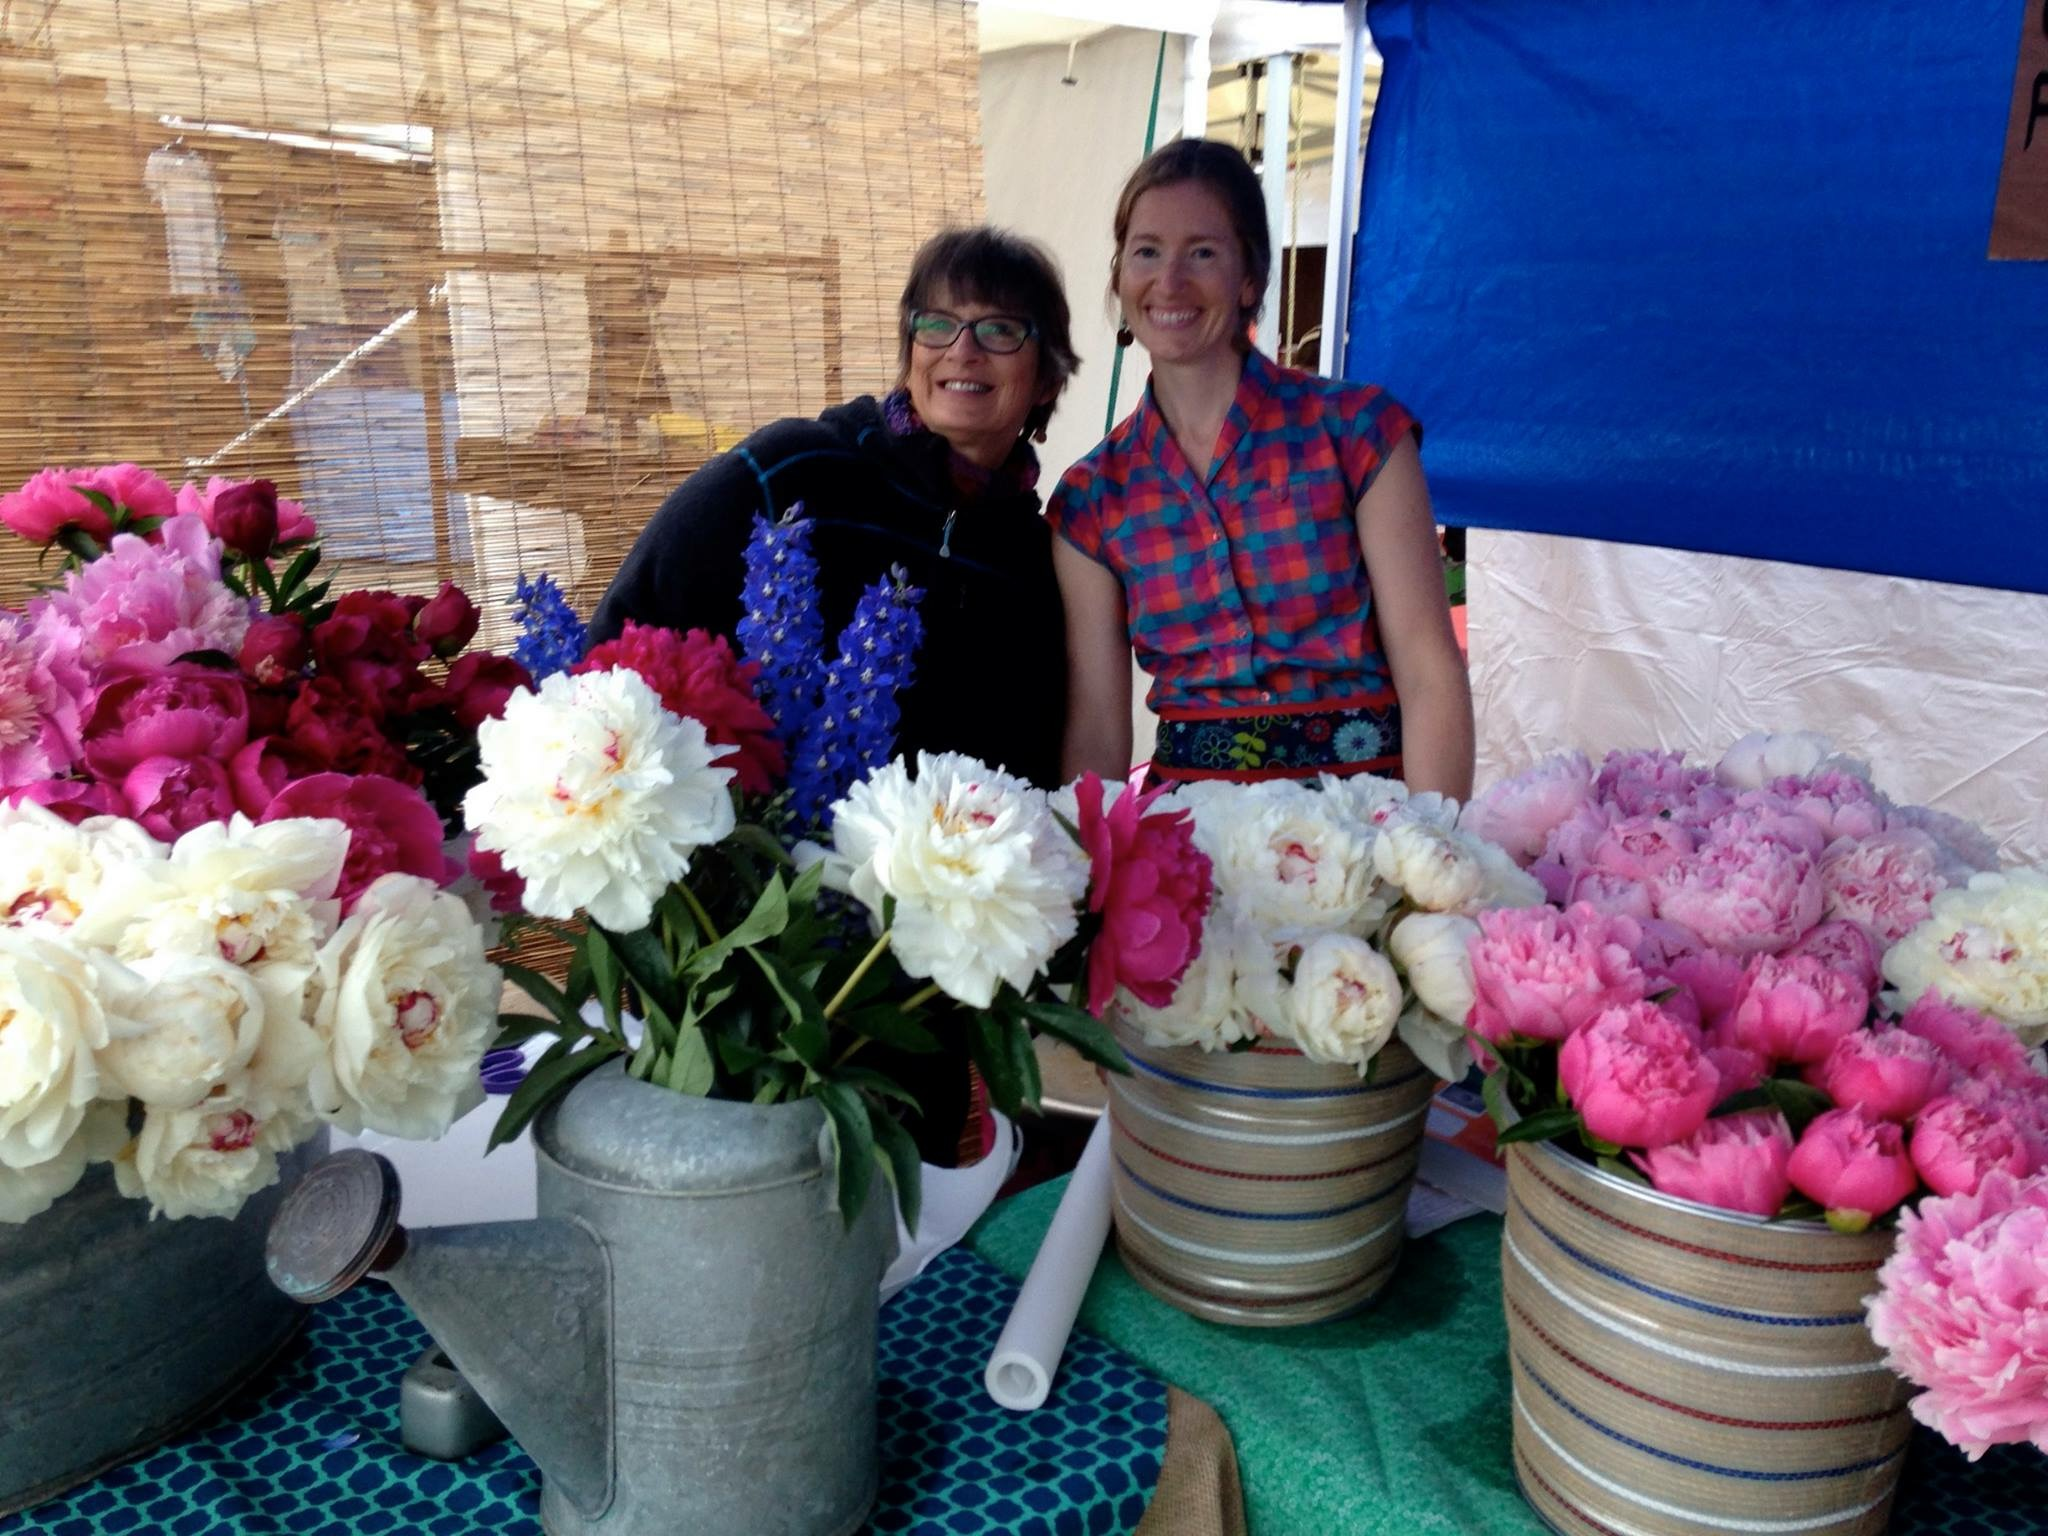 Aunty Hilma and Naomi at the Farmer's Market